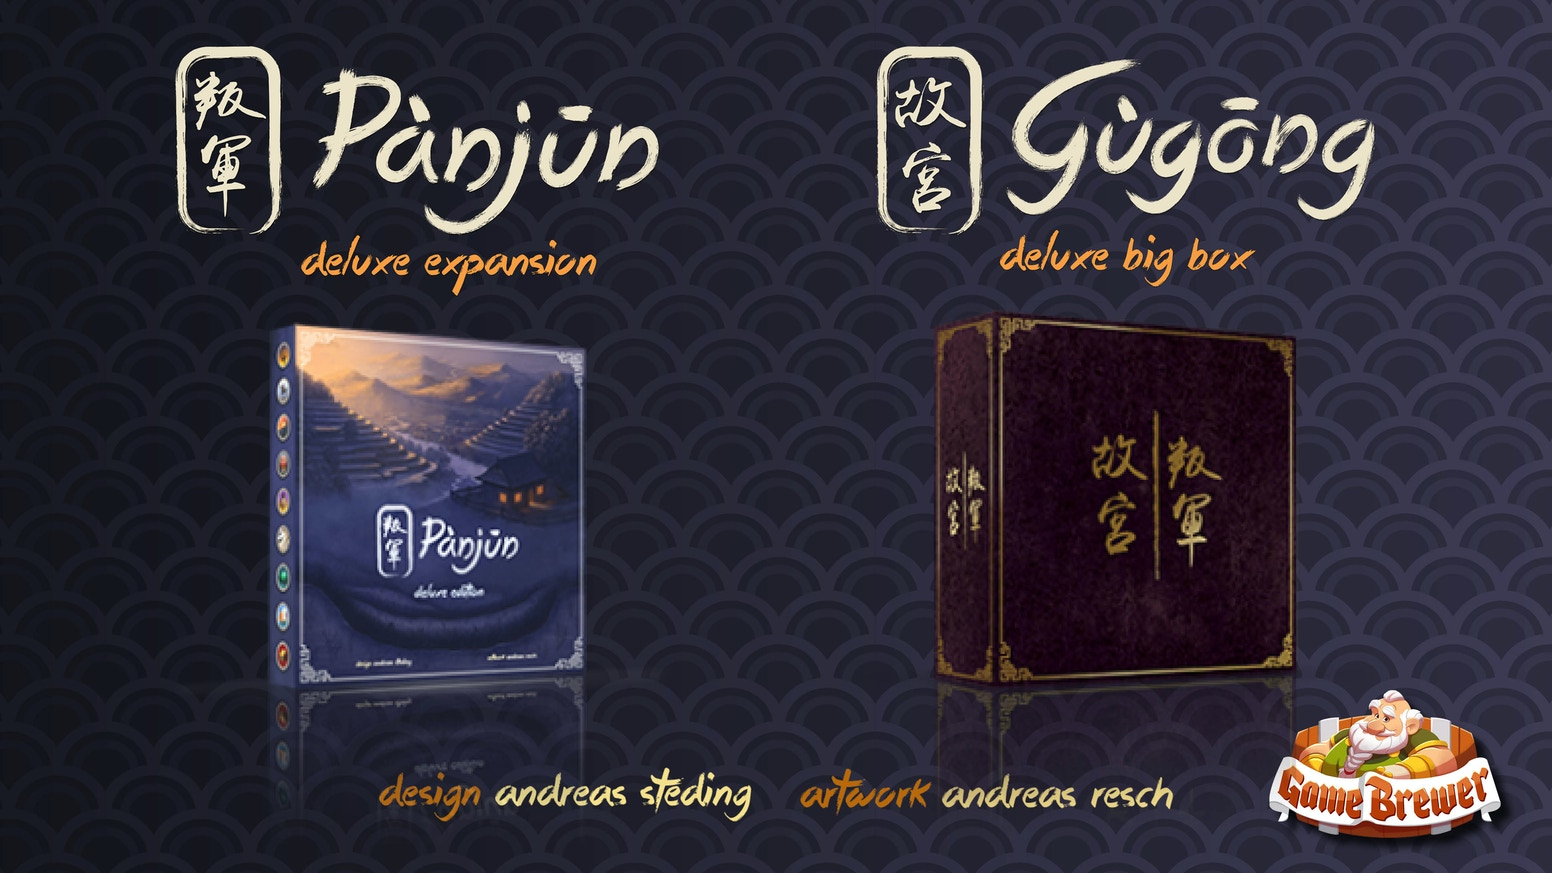 Gùgōng: Pànjūn: 4 expansion modules in 1 box of this 2018 hit! Designed by Andreas Steding with art from Andreas Resch.